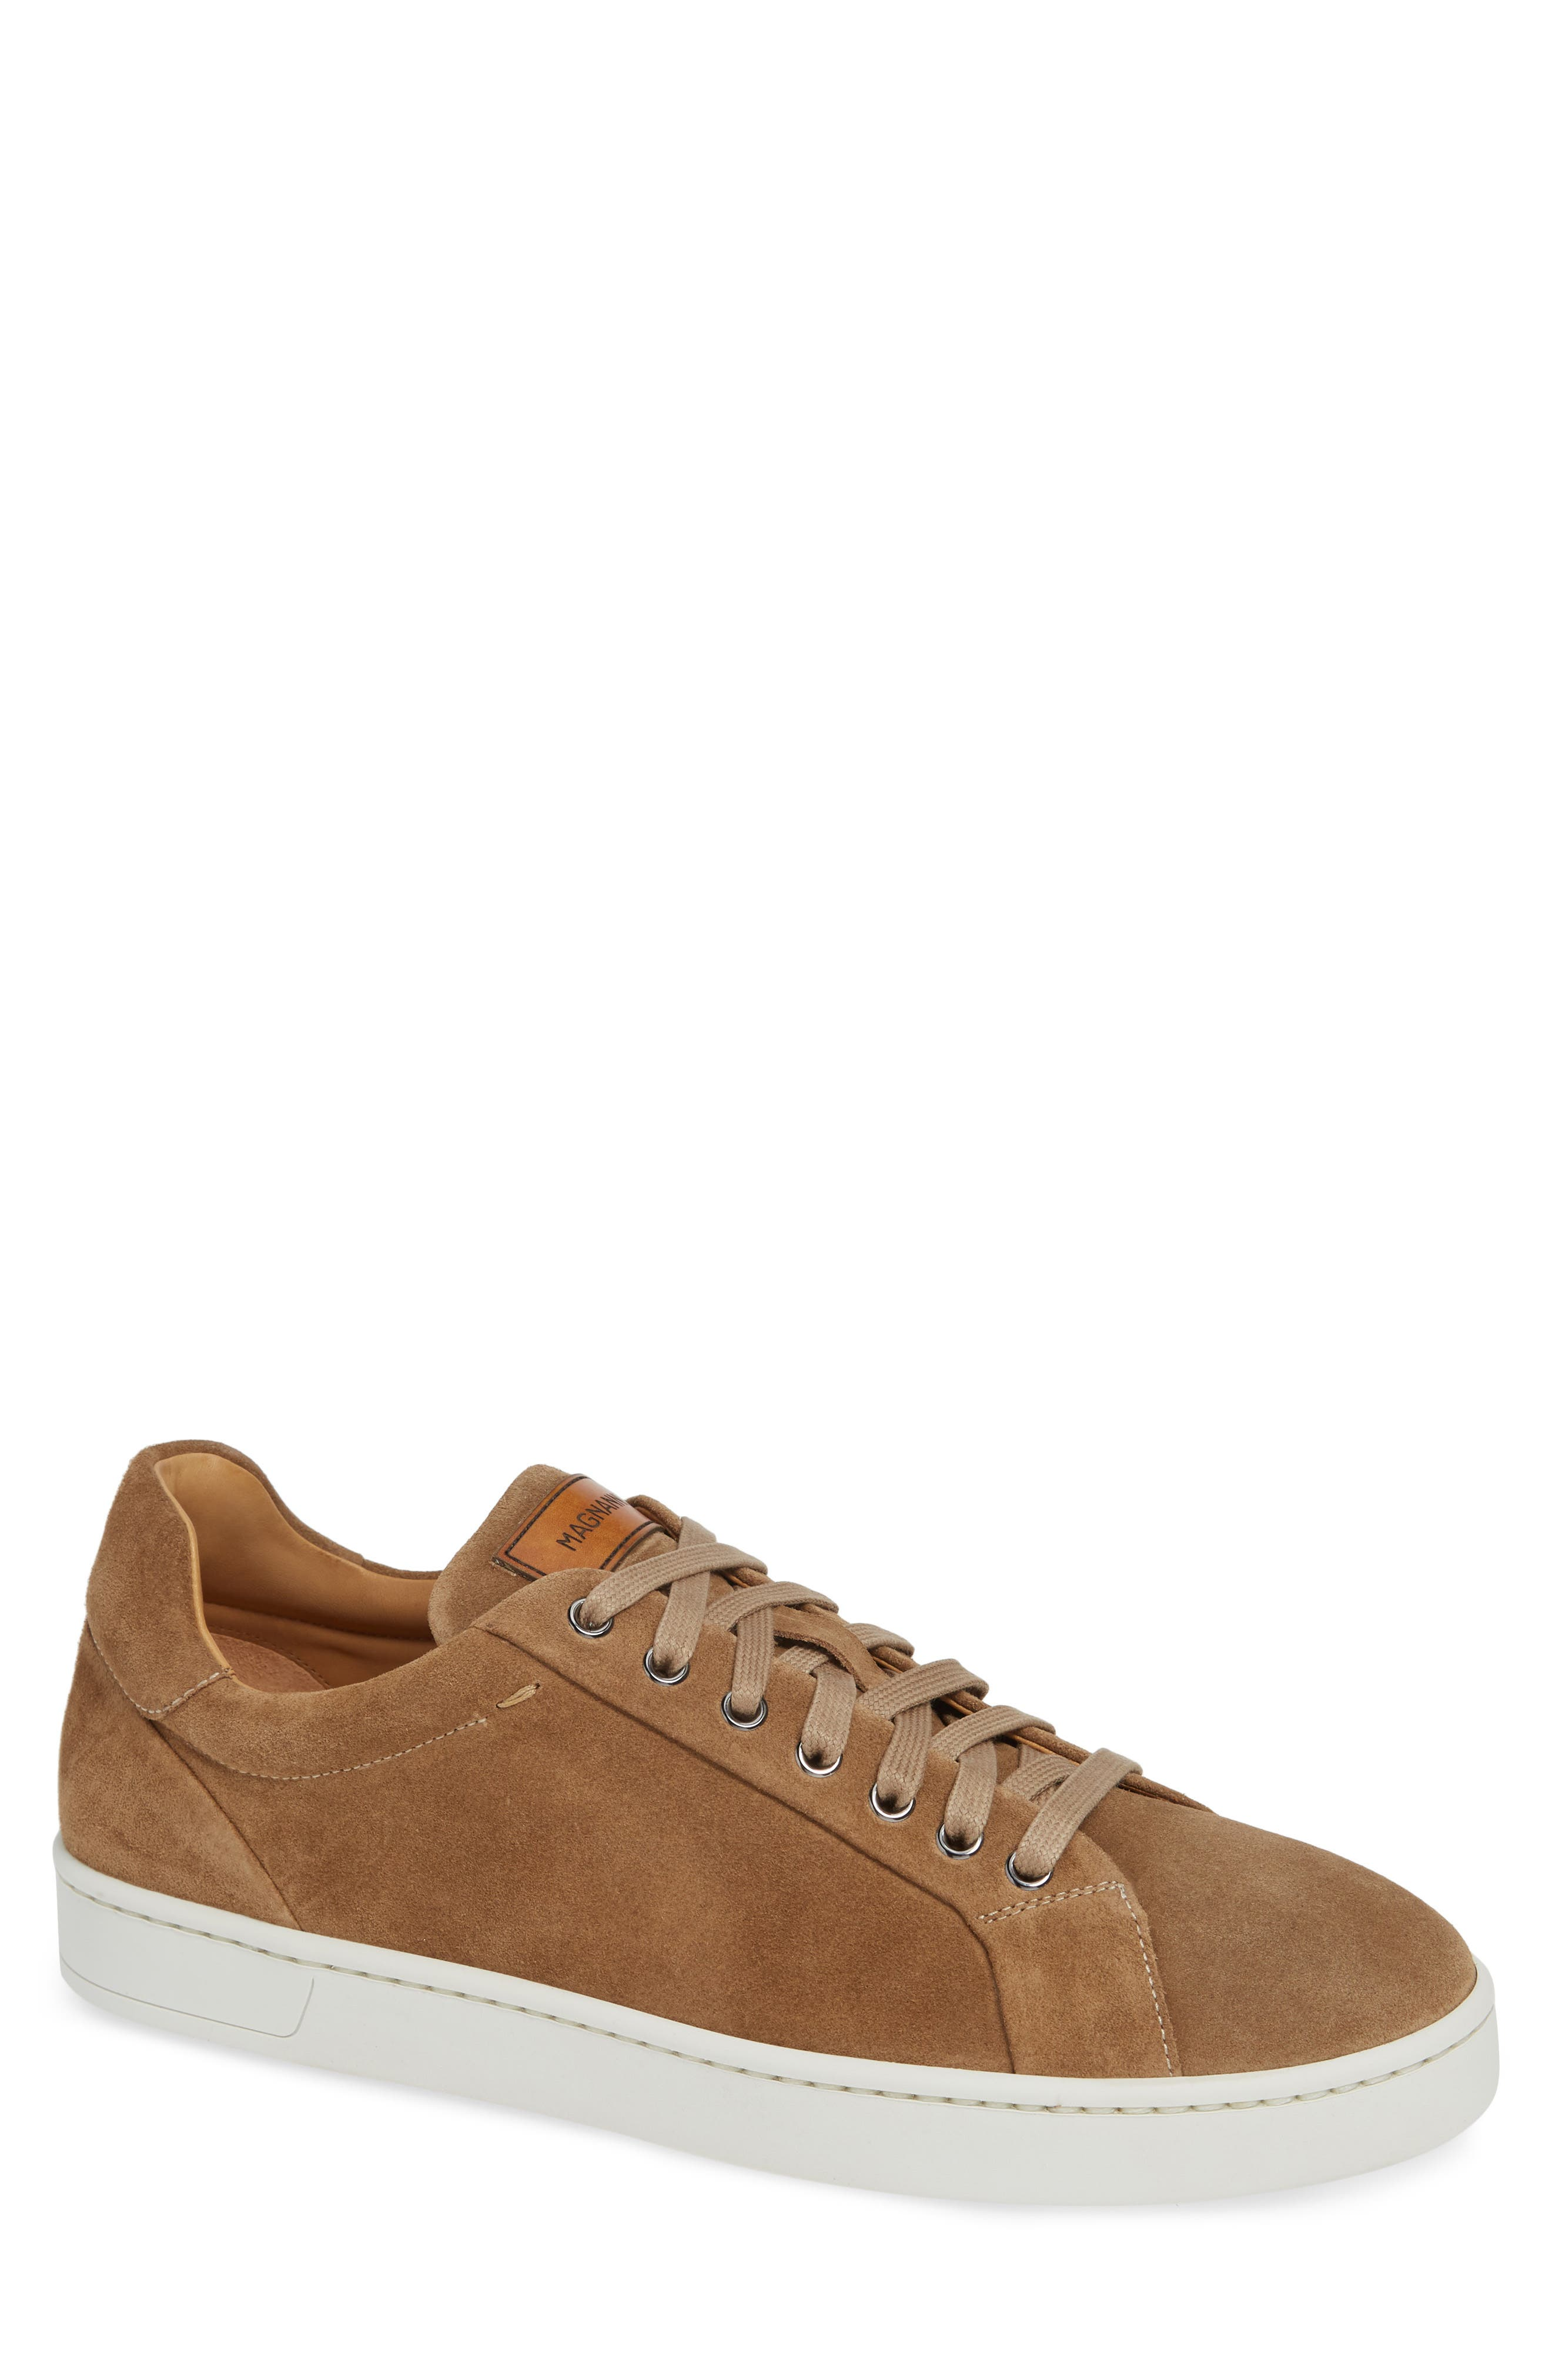 Elonso Low Top Sneaker,                         Main,                         color, CASTORO LEATHER